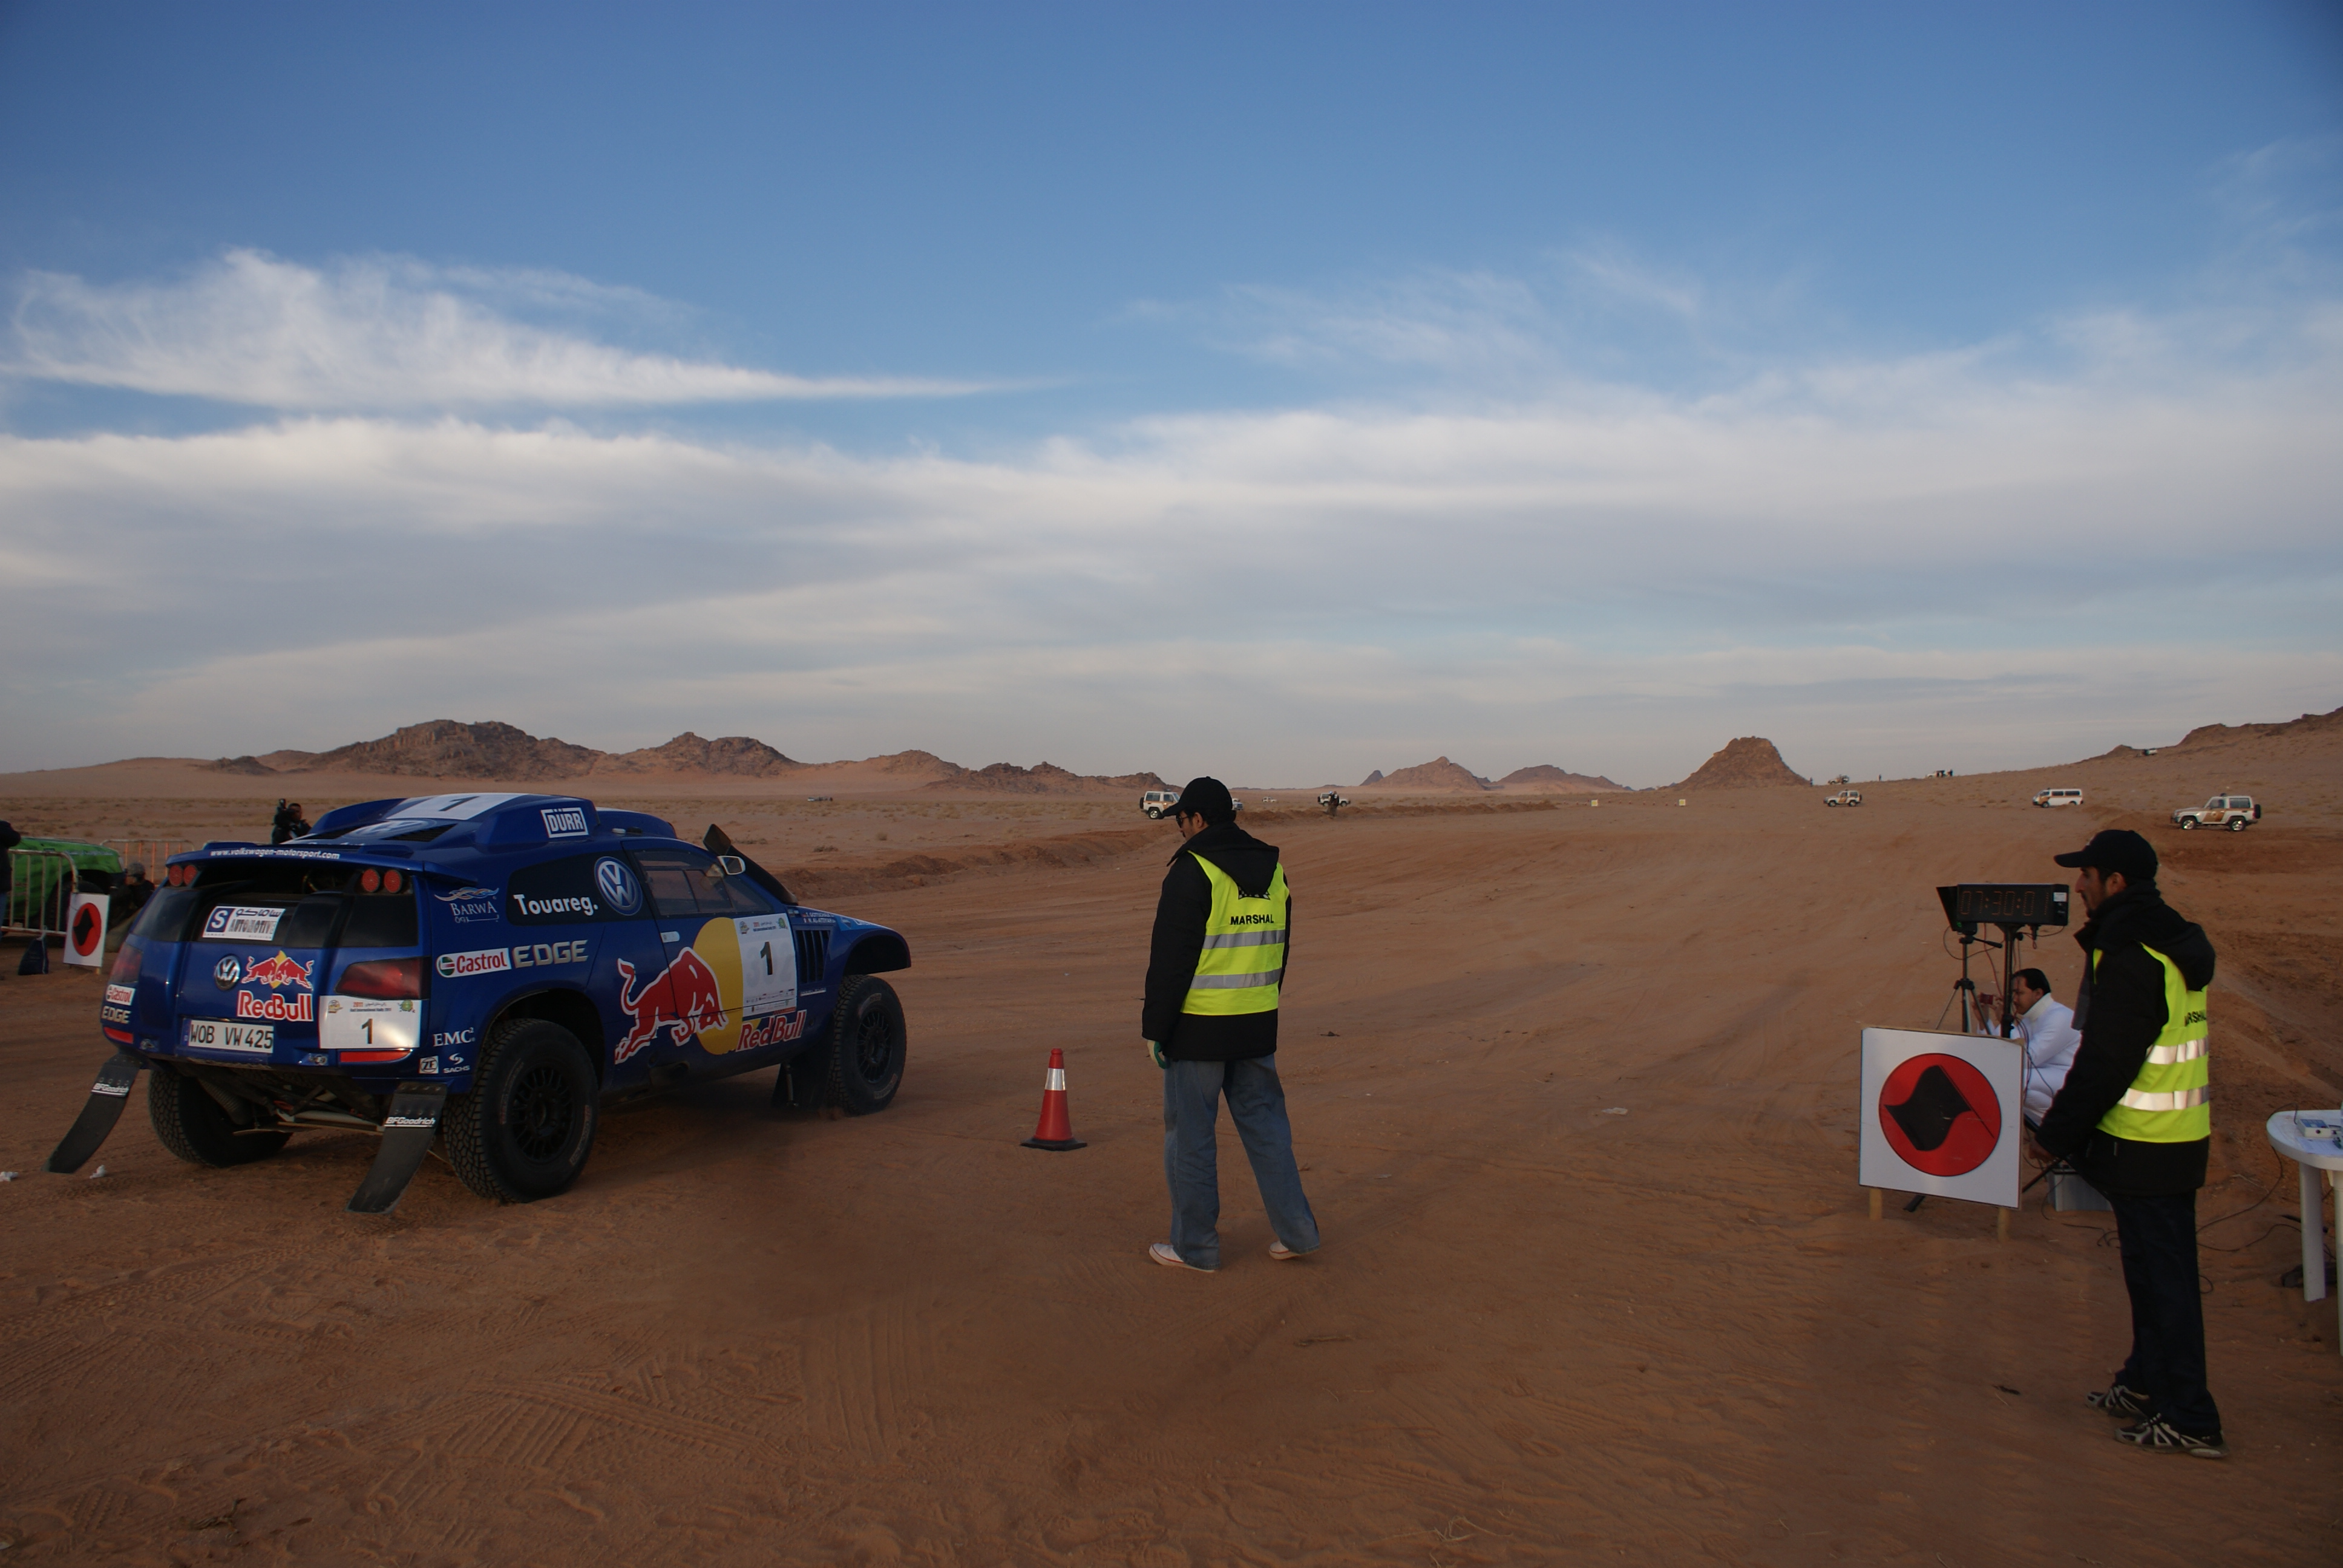 At the start of the desert stage of the Ha'il Rally